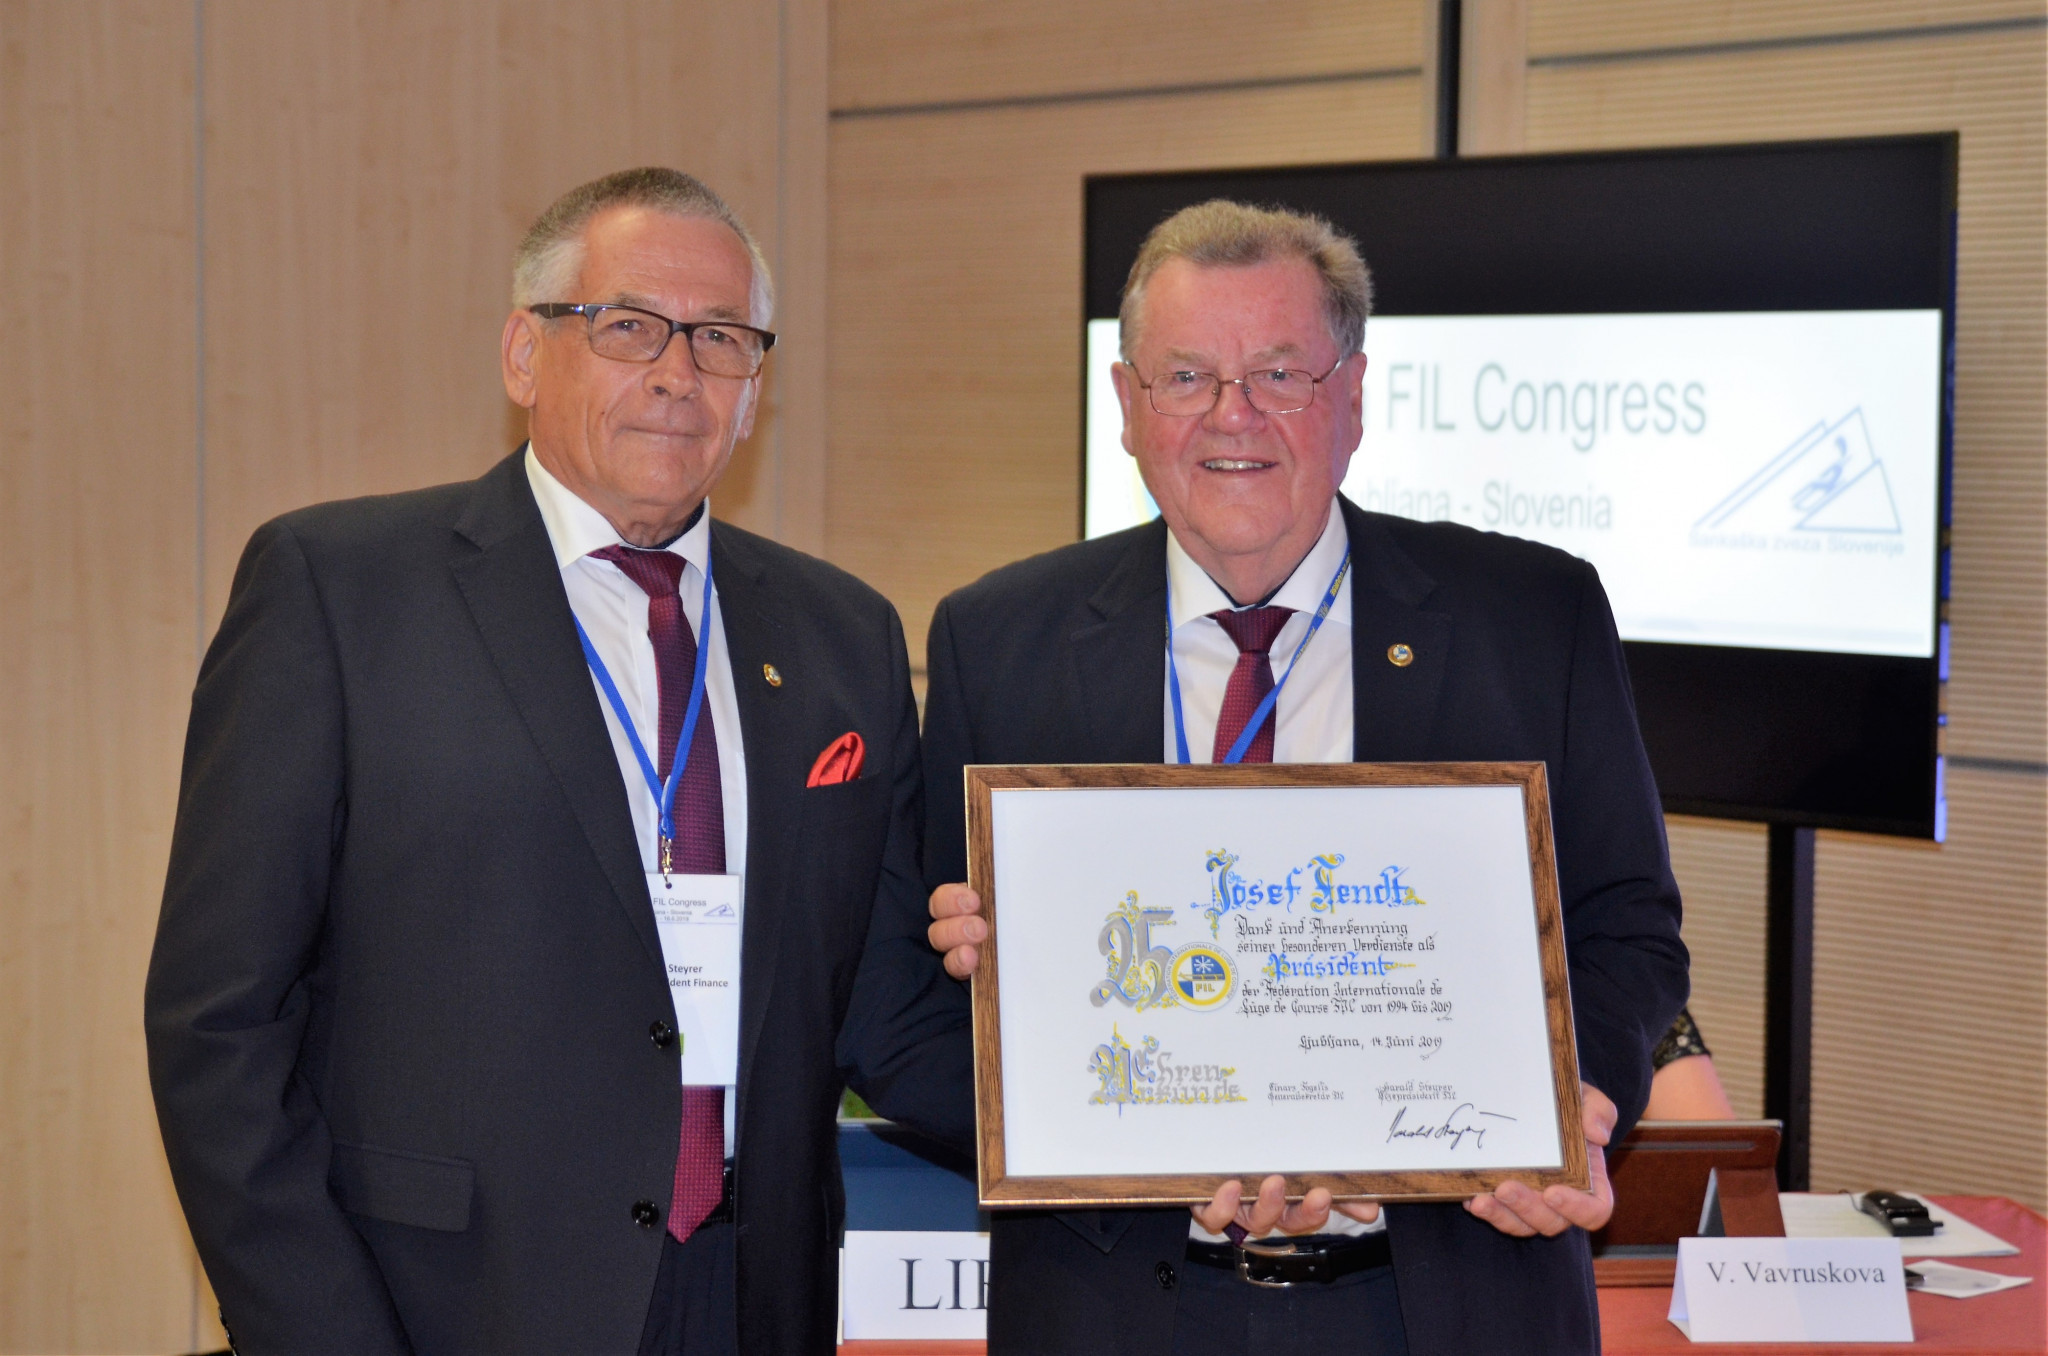 Fendt celebrates 25-year anniversary as President of International Luge Federation